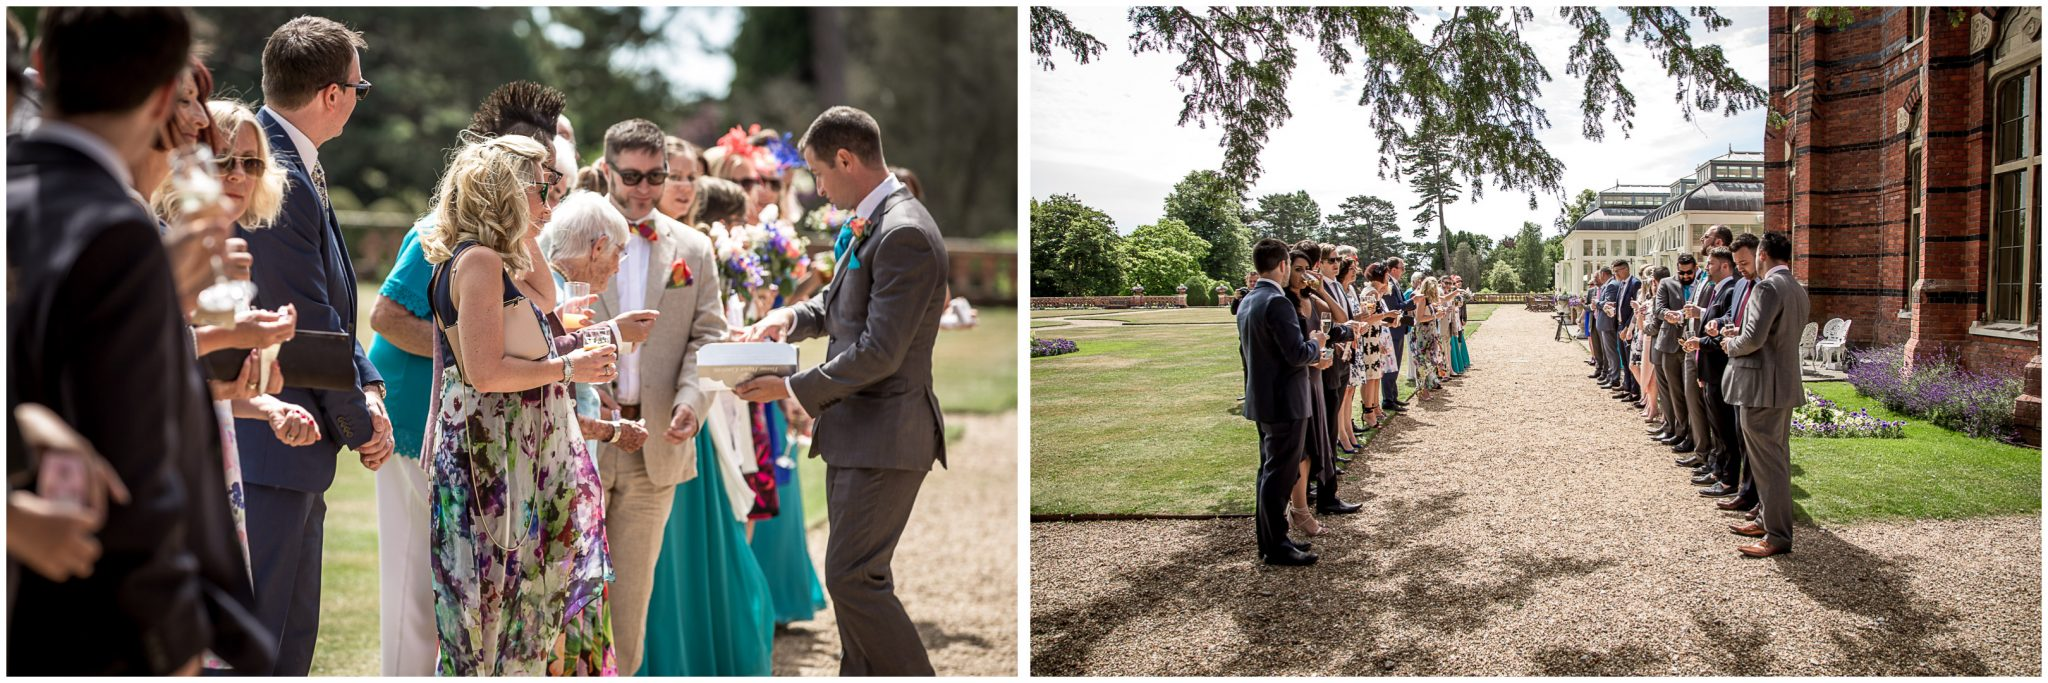 Guests line up with confetti ready to receive the couple at the Elvetham Hotel